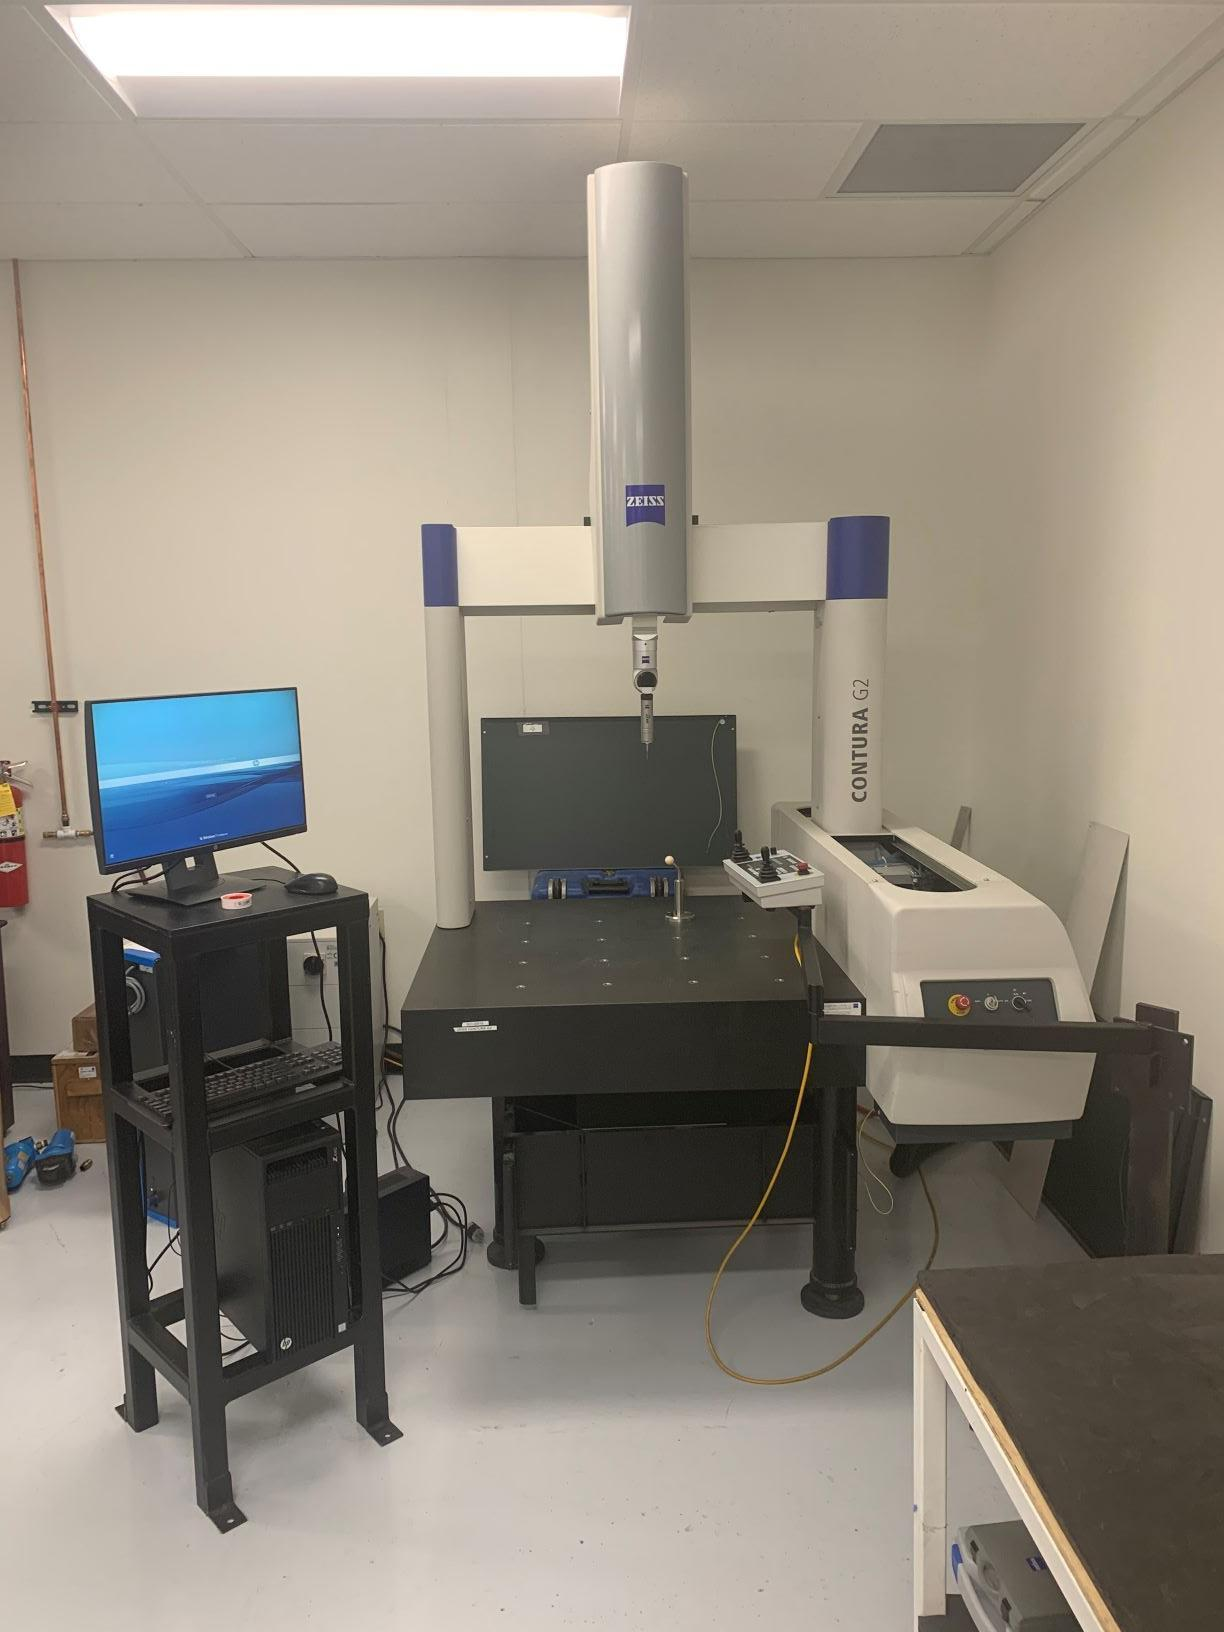 2006 Zeiss Contura G2 RDS 7/7/6 Coordinate Measuring Machine (CMM)